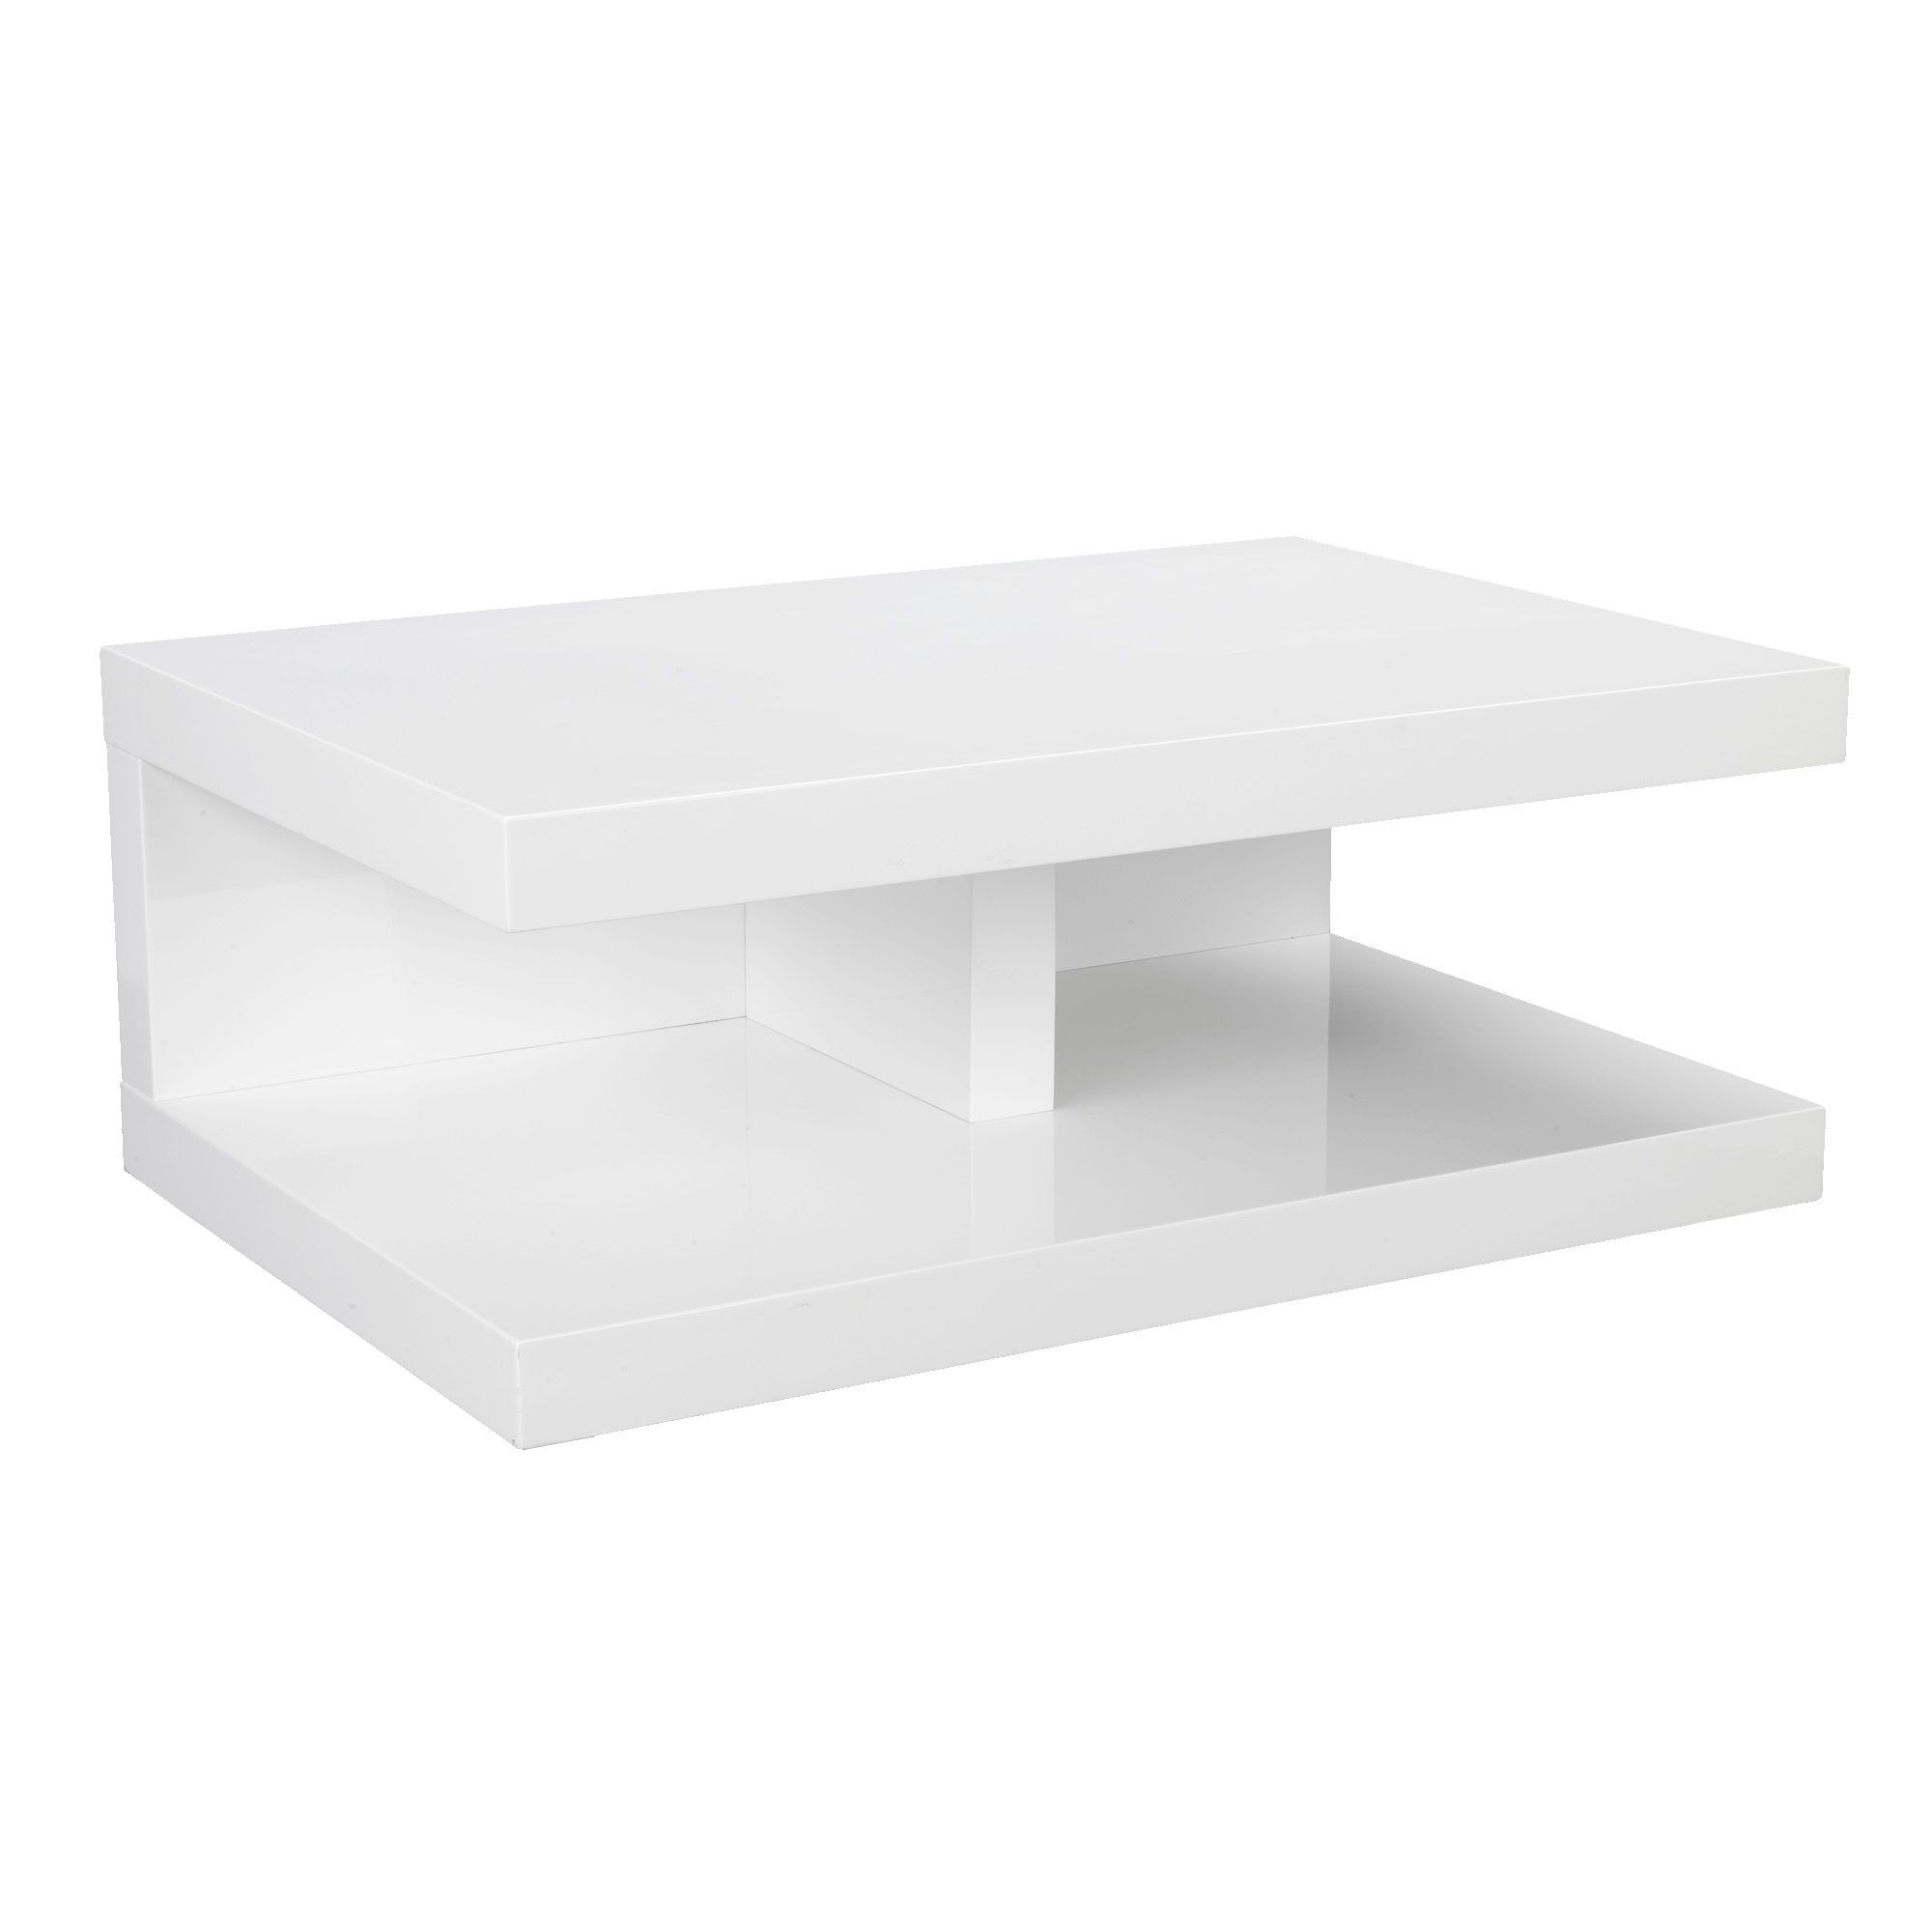 bef595b420cba4be98696f206b58a7c6 Frais De Table Basse Blanche Rectangulaire